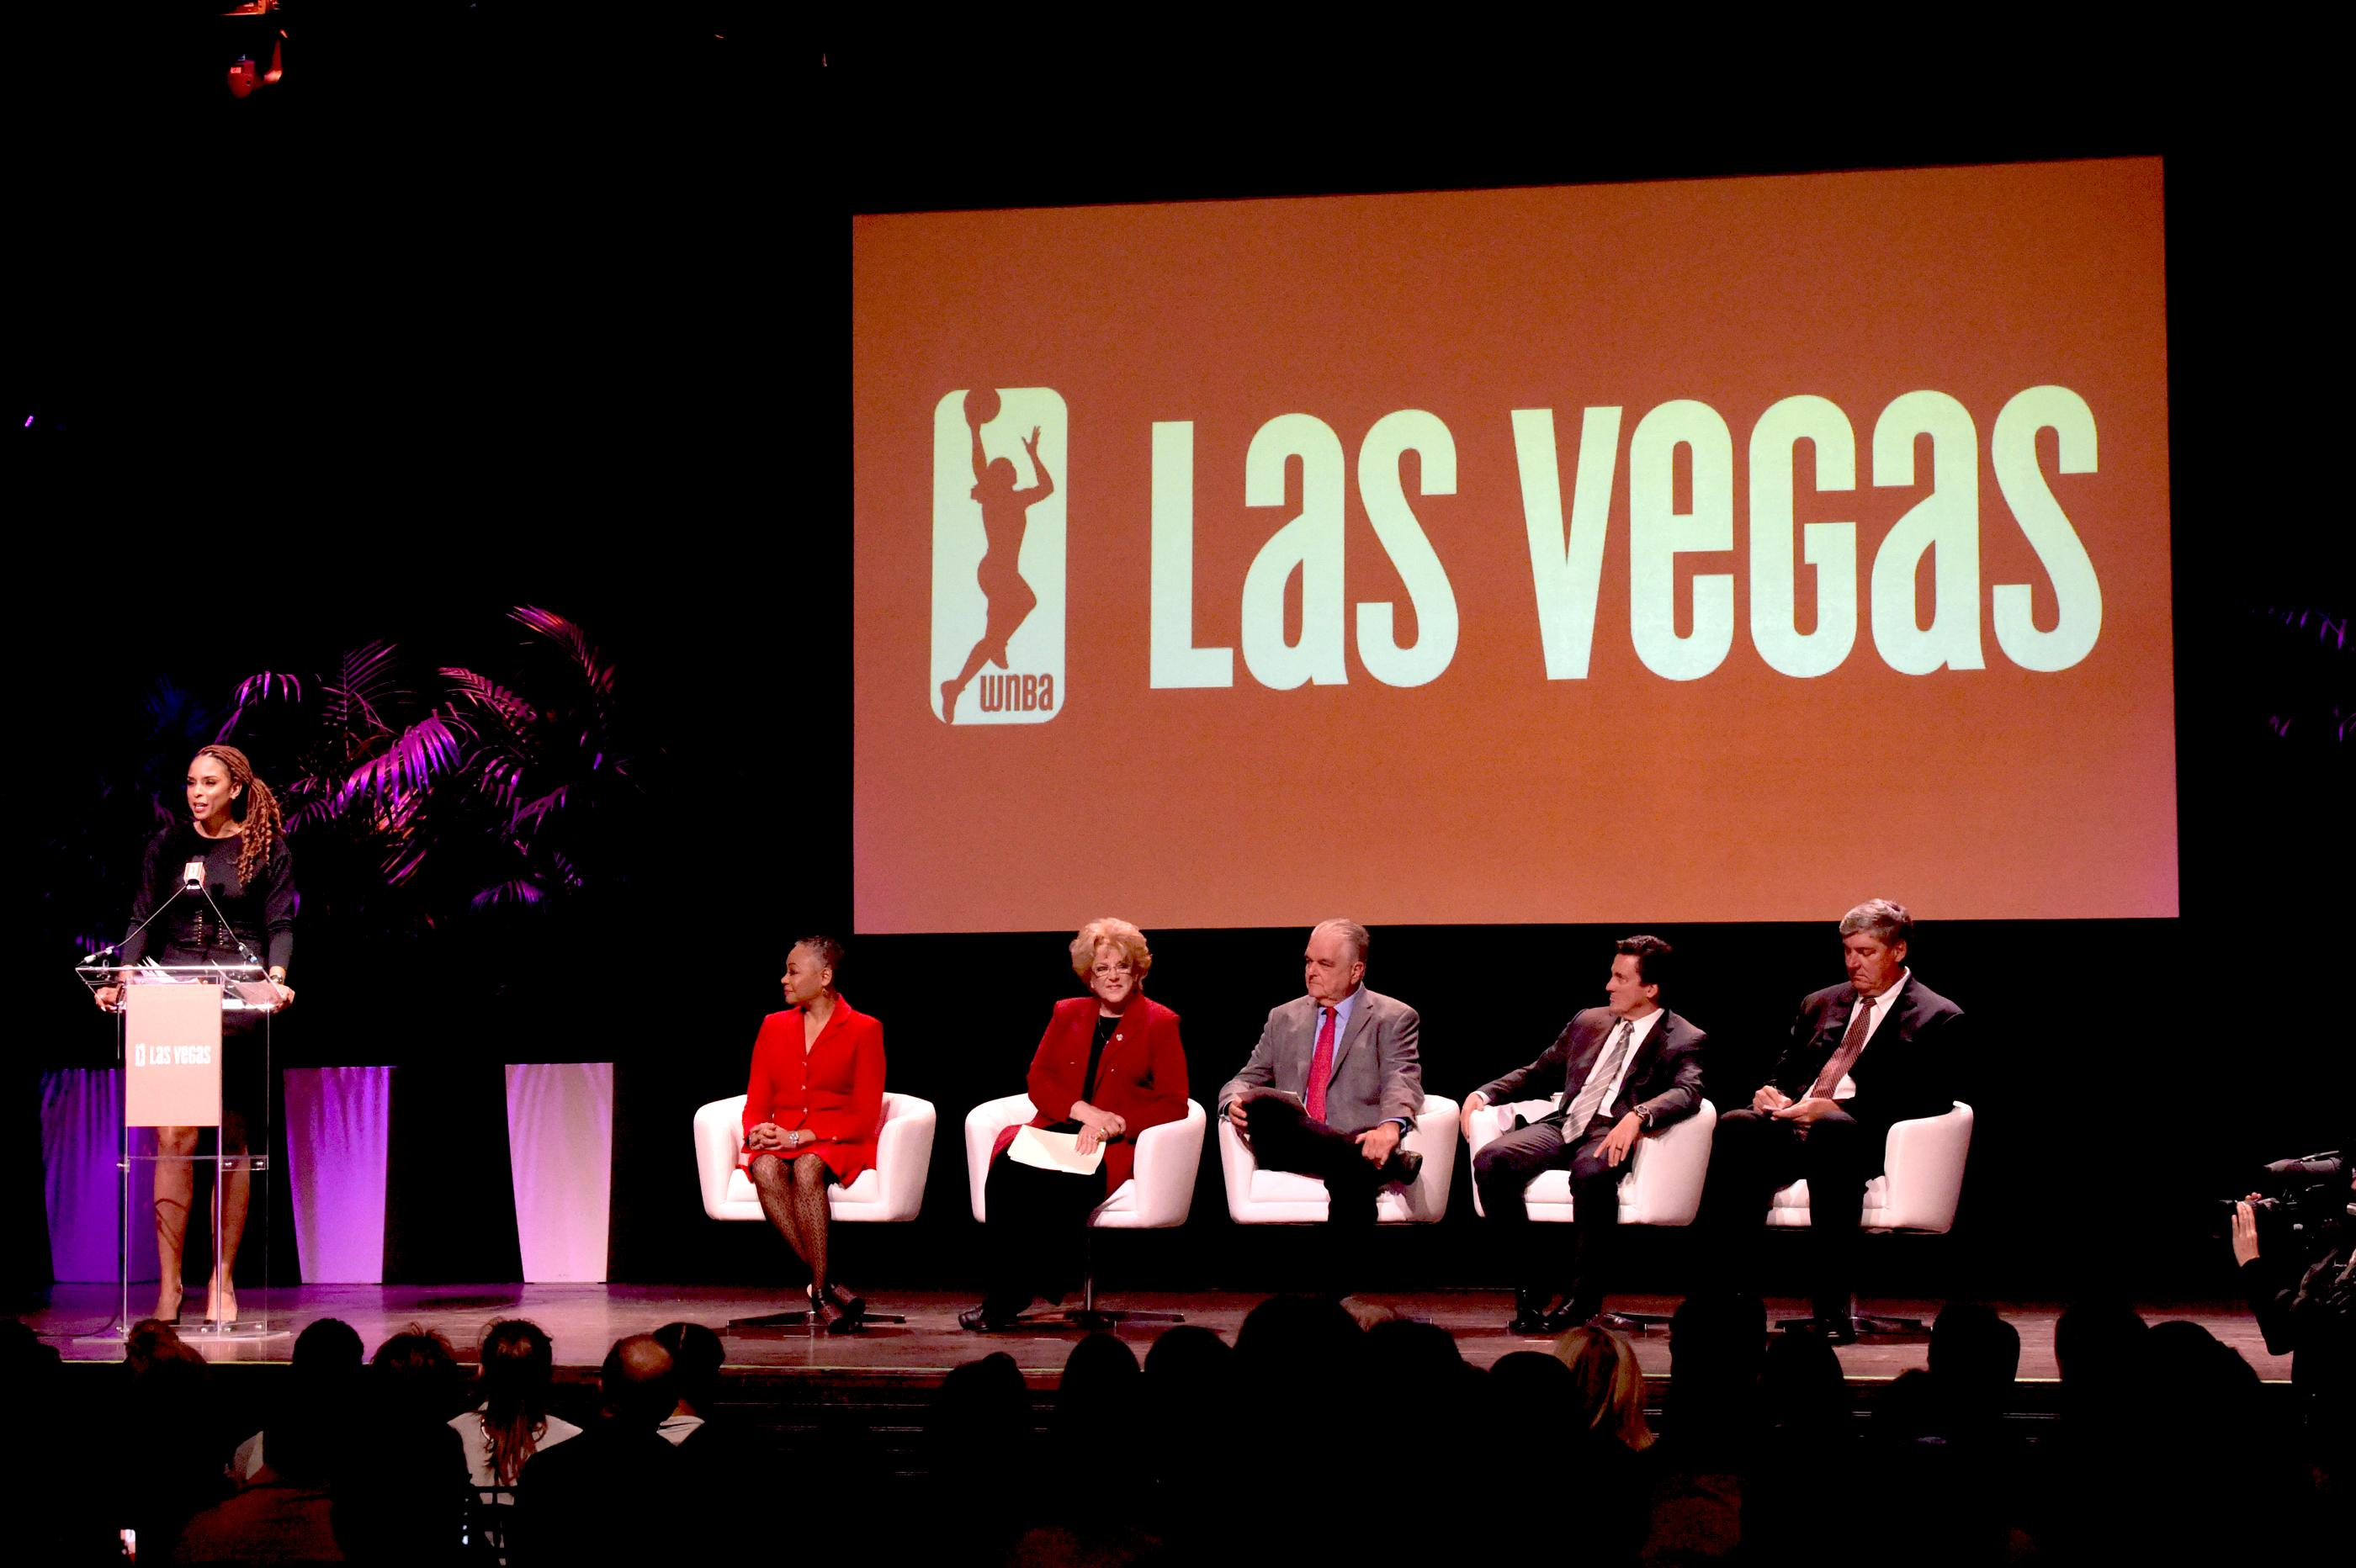 LaChina Robinson event host introduces the speakers  at the press conference announcing the WNBA Las Vegas Aces as the newest professional sports franchise in Las Vegas at Mandalay Bay. Pictured: (l-r) LaChina Robinson, Lisa Borders, Carolyn G. Goodman, Steve Sisolak, Bill Hornbuckle and Bill Laimbeer. Monday, December 11, 2017. CREDIT: Glenn Pinkerton/Las Vegas News BureauBureauBureau